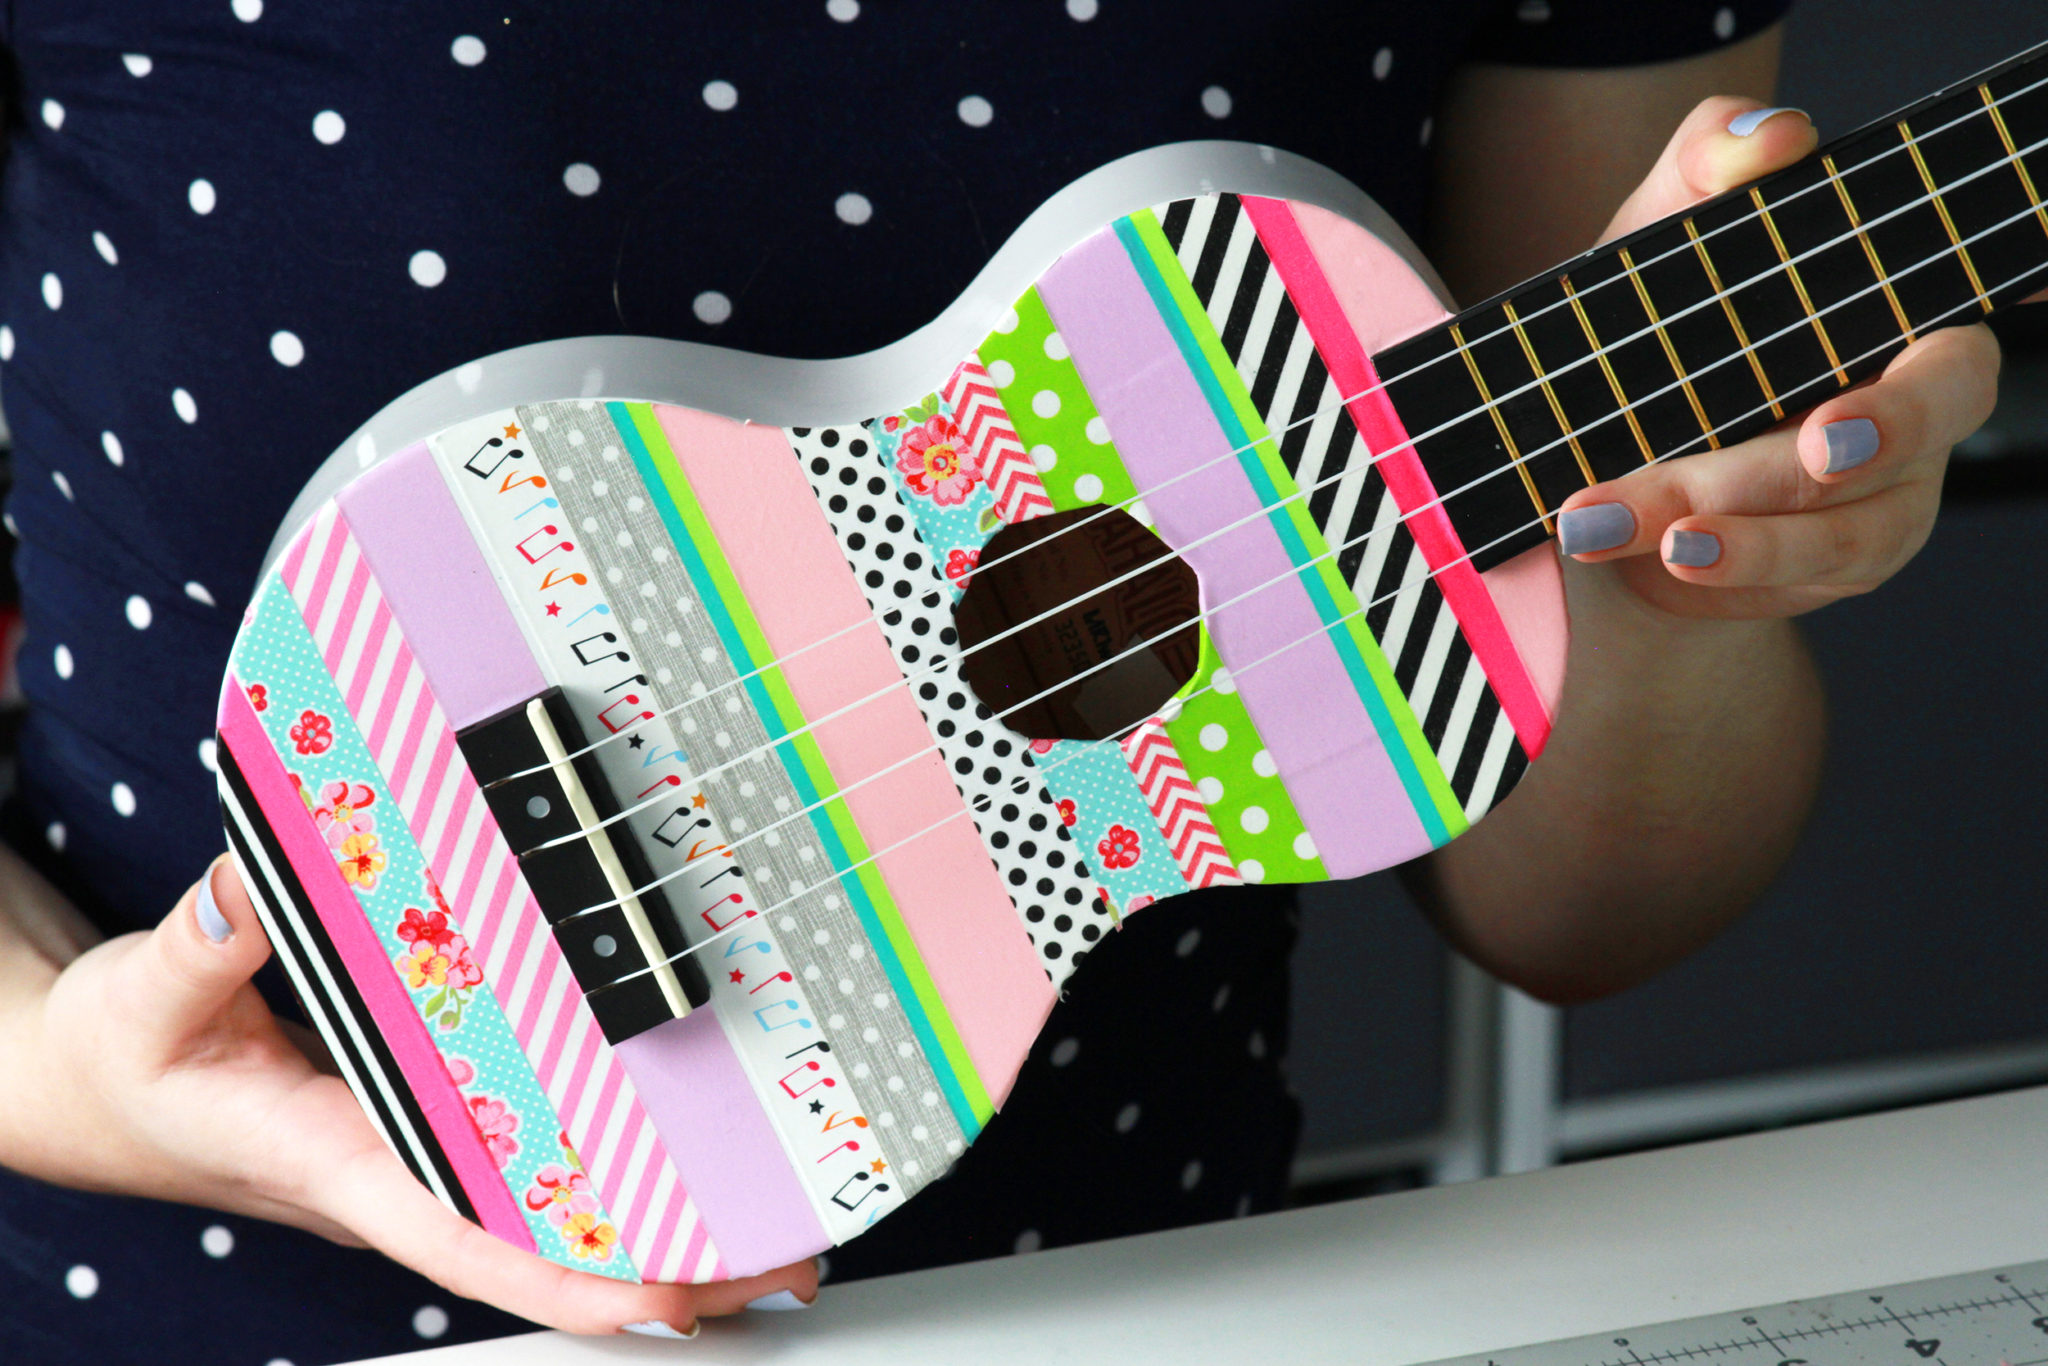 30 Minute Ukulele Decorating Challenge With Andrew Huang